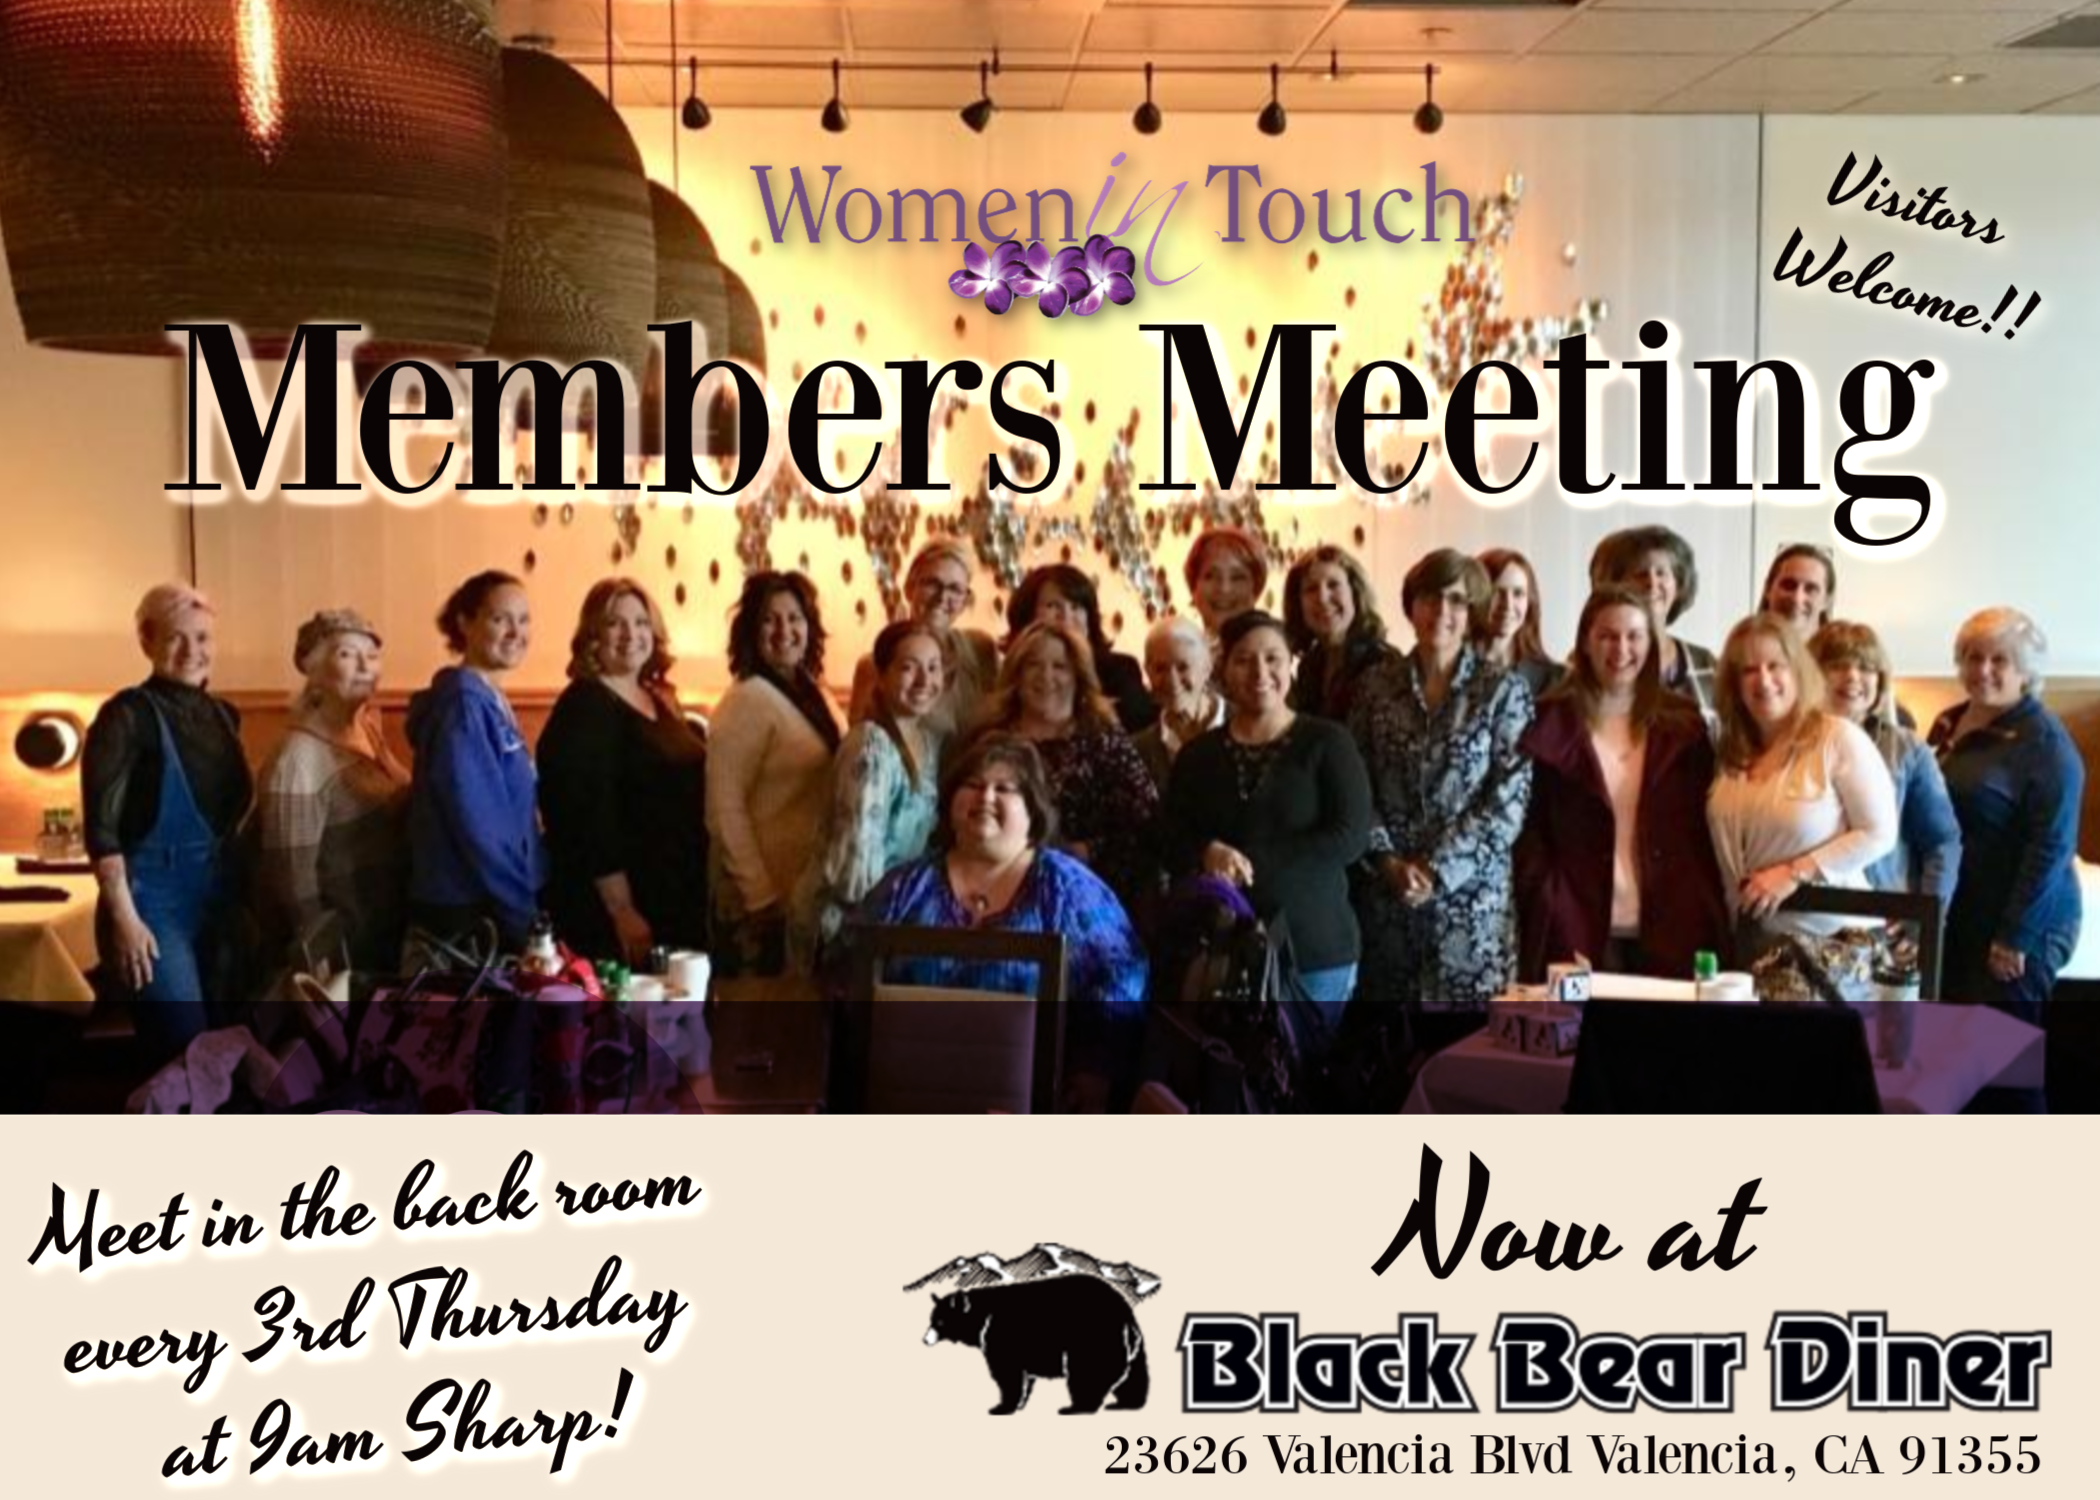 Women in Touch Members - SCV NOV Meeting - Visitors Welcome!